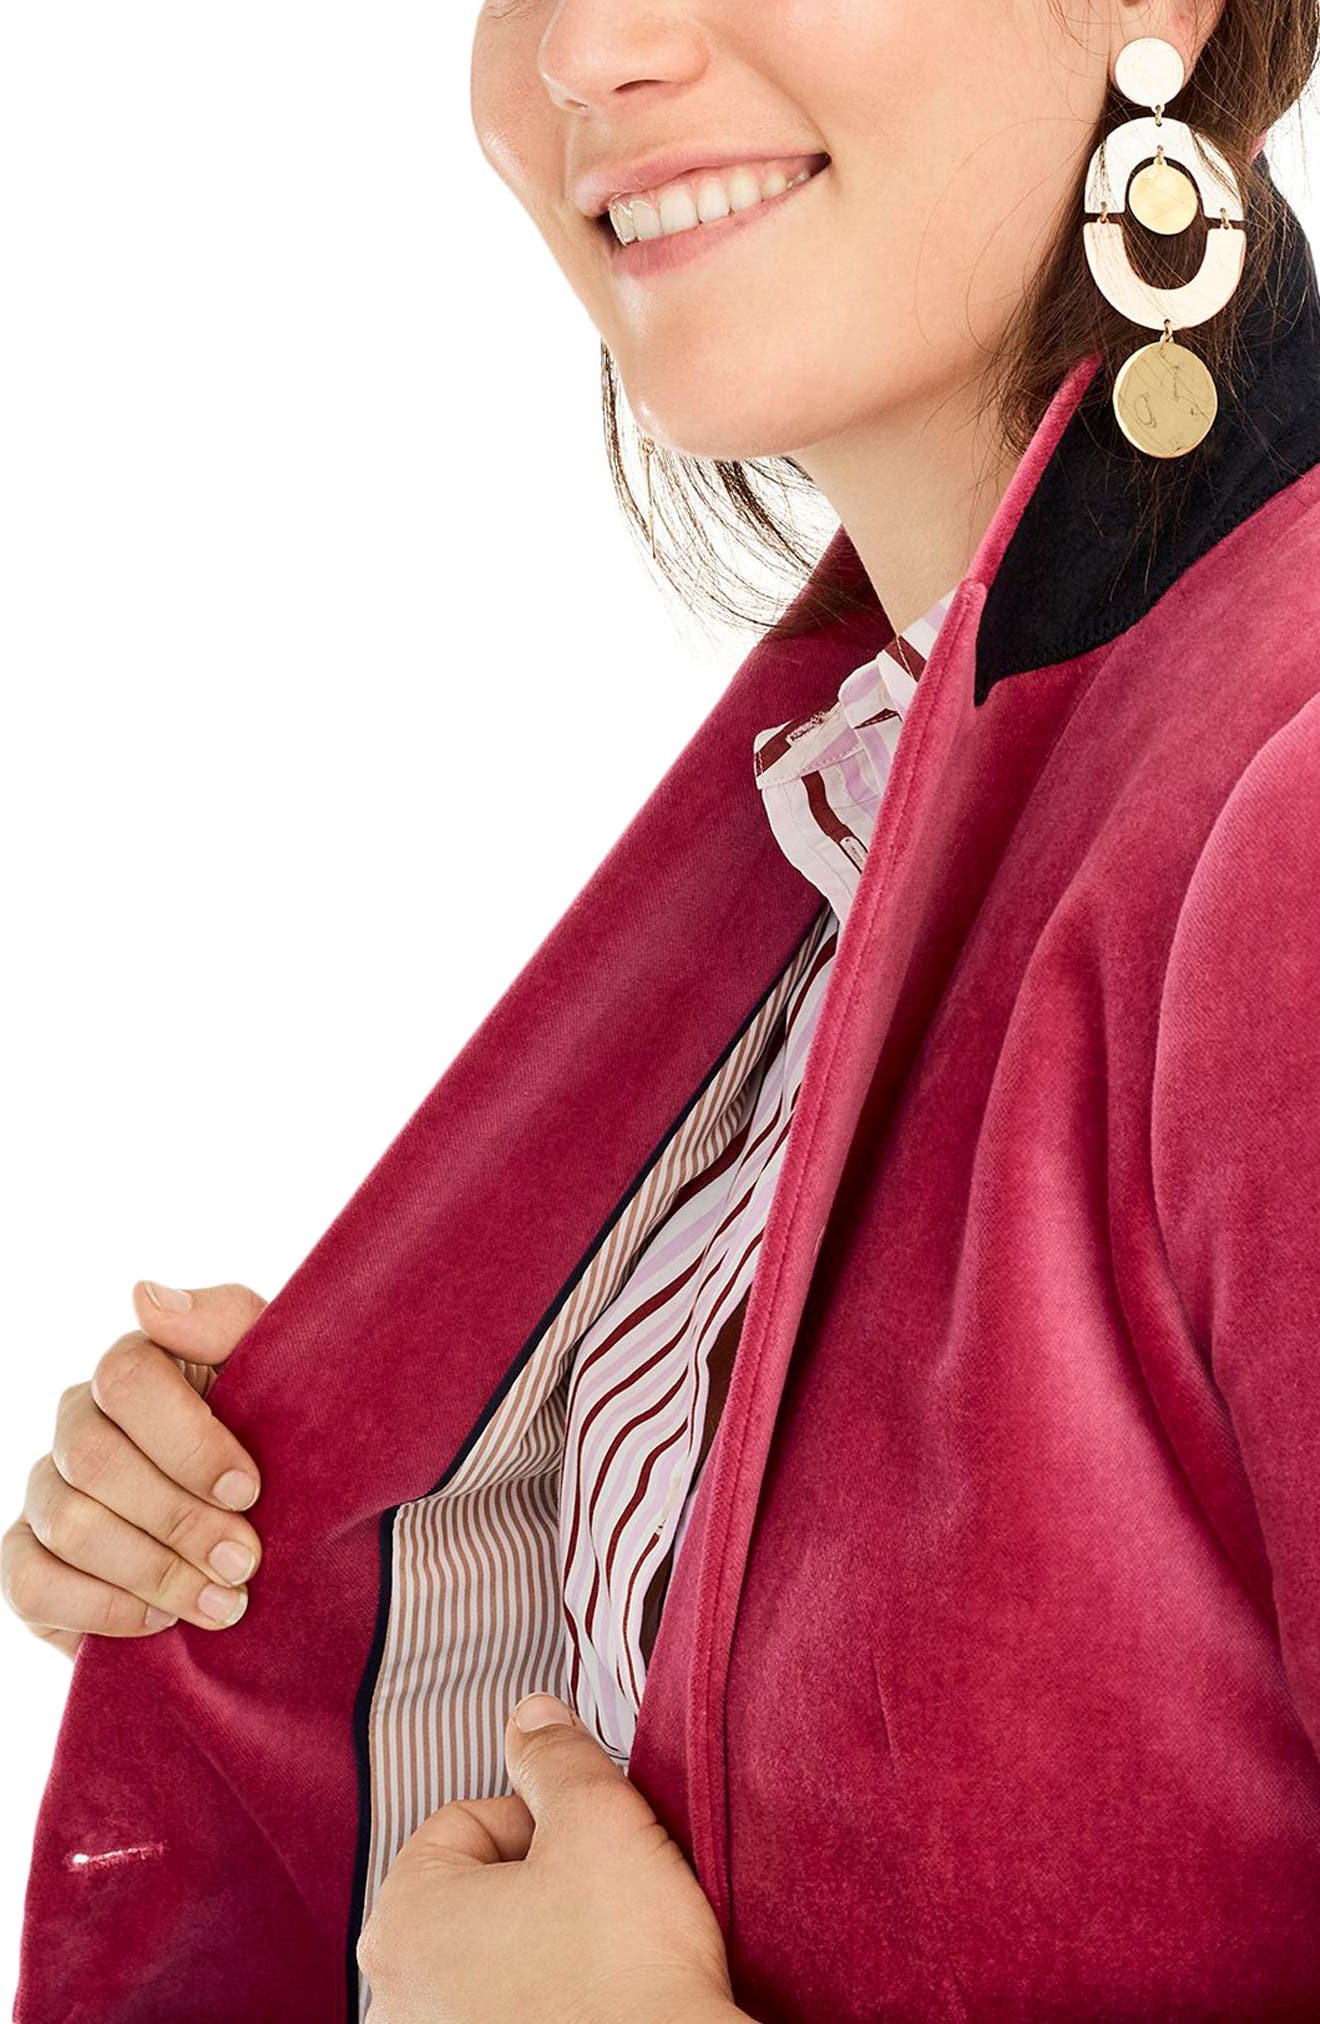 Parke Velvet Blazer,                             Alternate thumbnail 9, color,                             DRIED ROSE